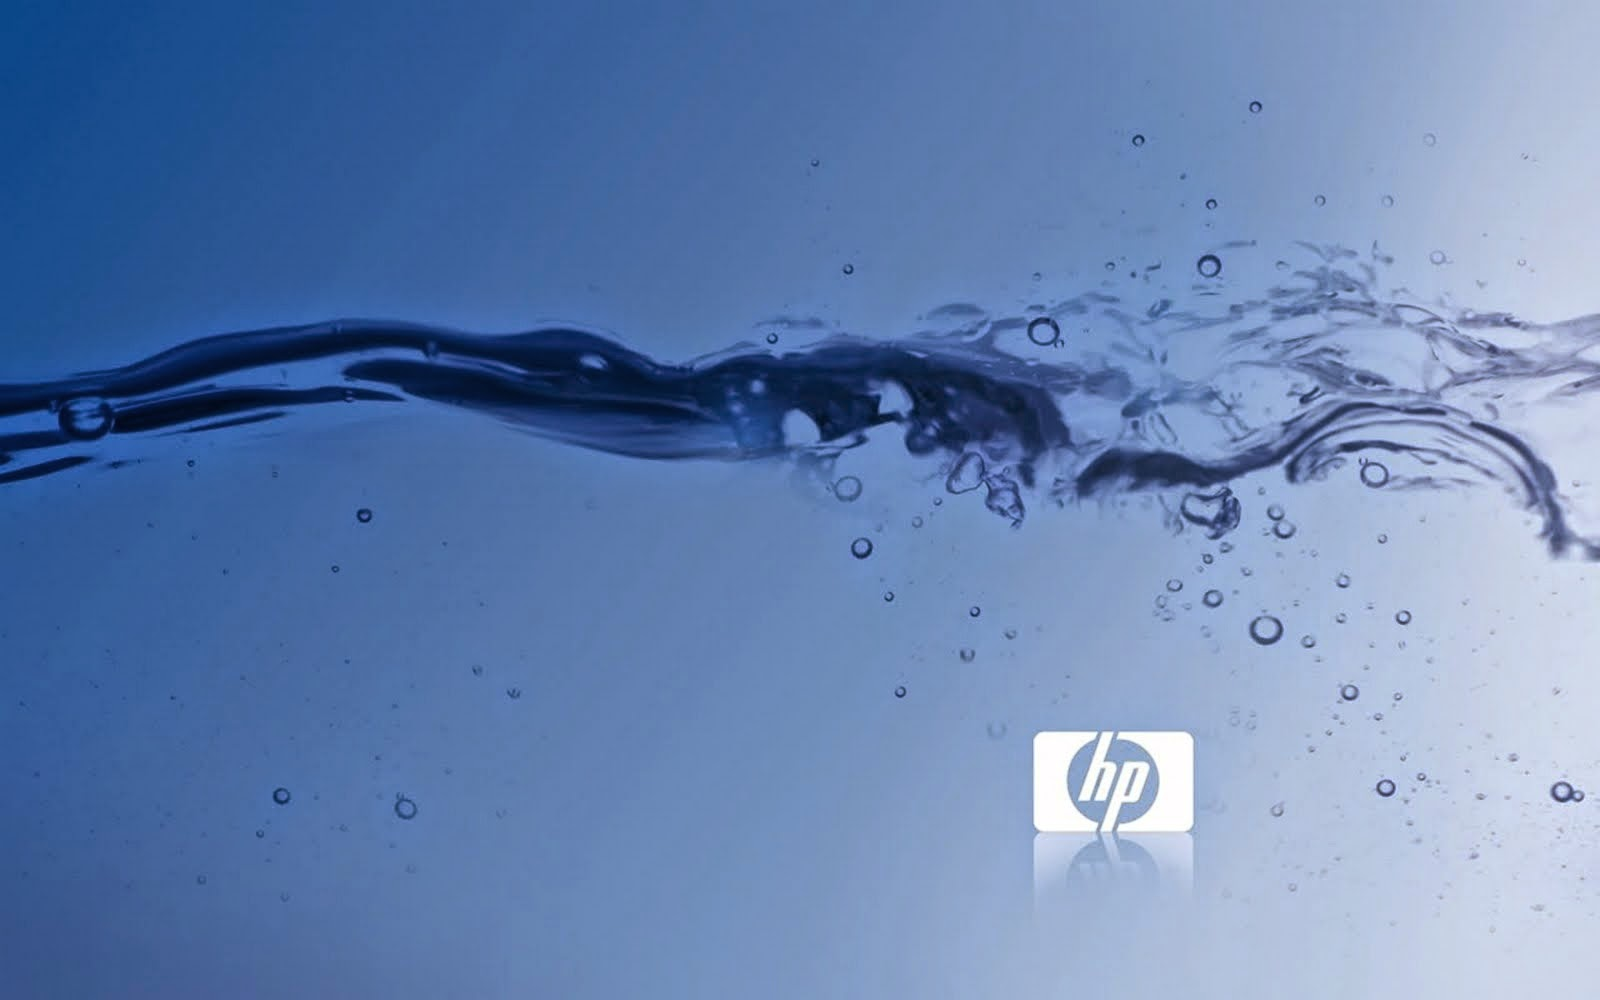 Hp new hd wallpapers wallpapers - Wallpaper picture ...